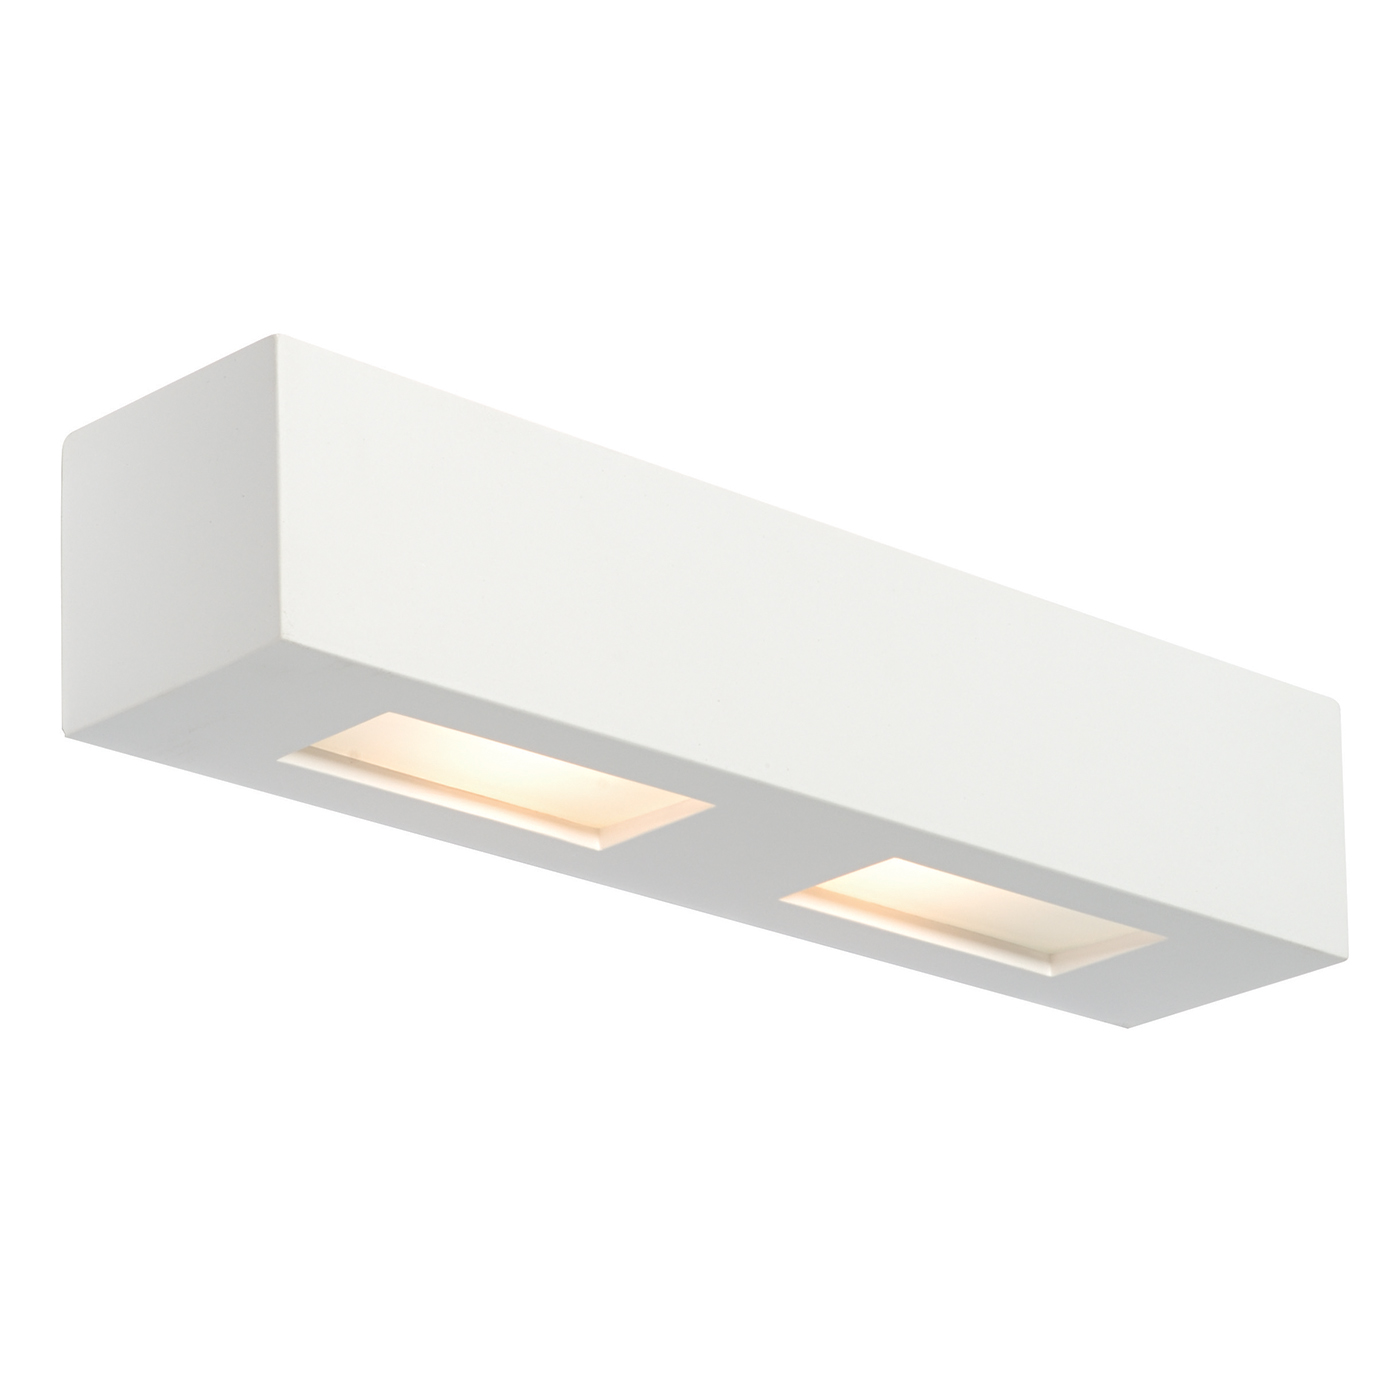 Endon Box 2lt wall light 28W White plaster & frosted glass